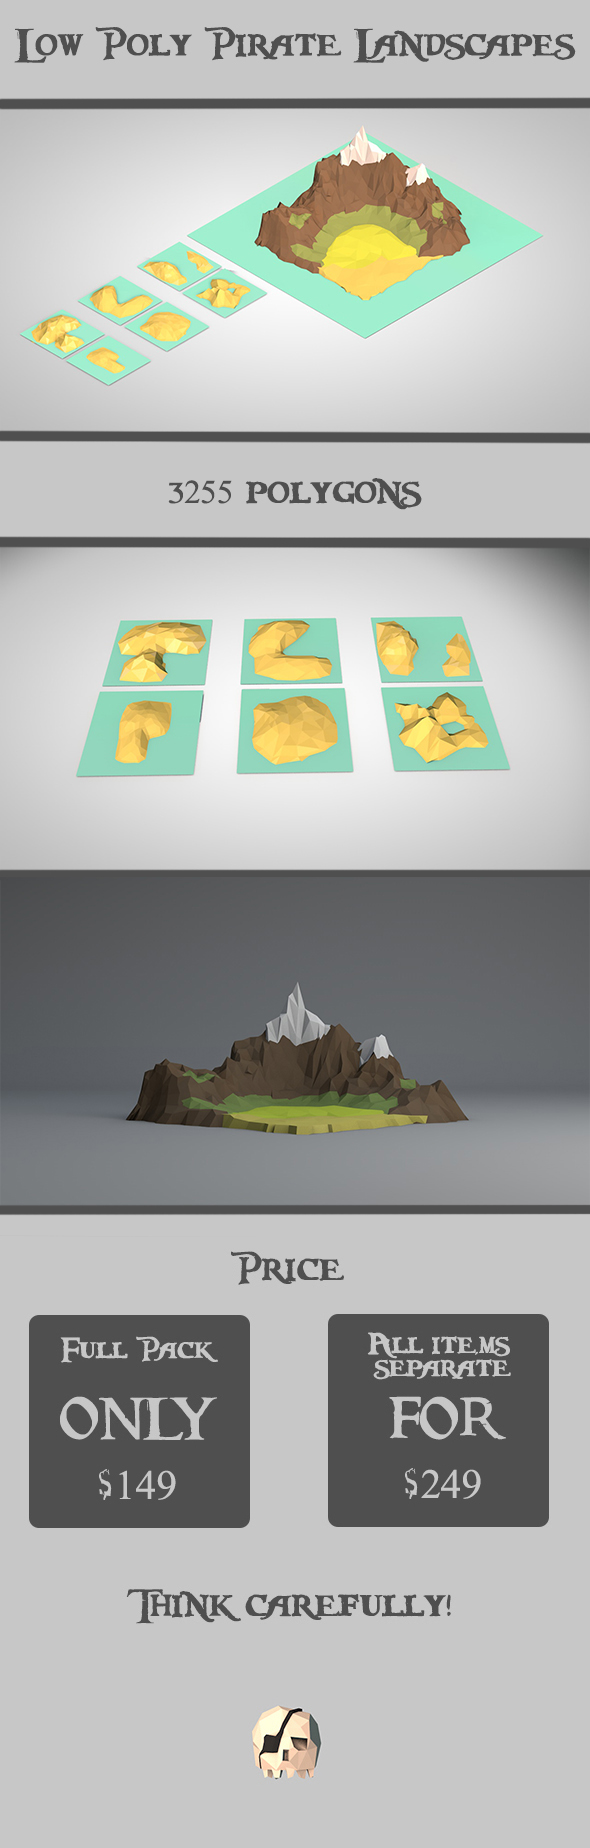 Low Poly Pirate Landscapes - 3DOcean Item for Sale